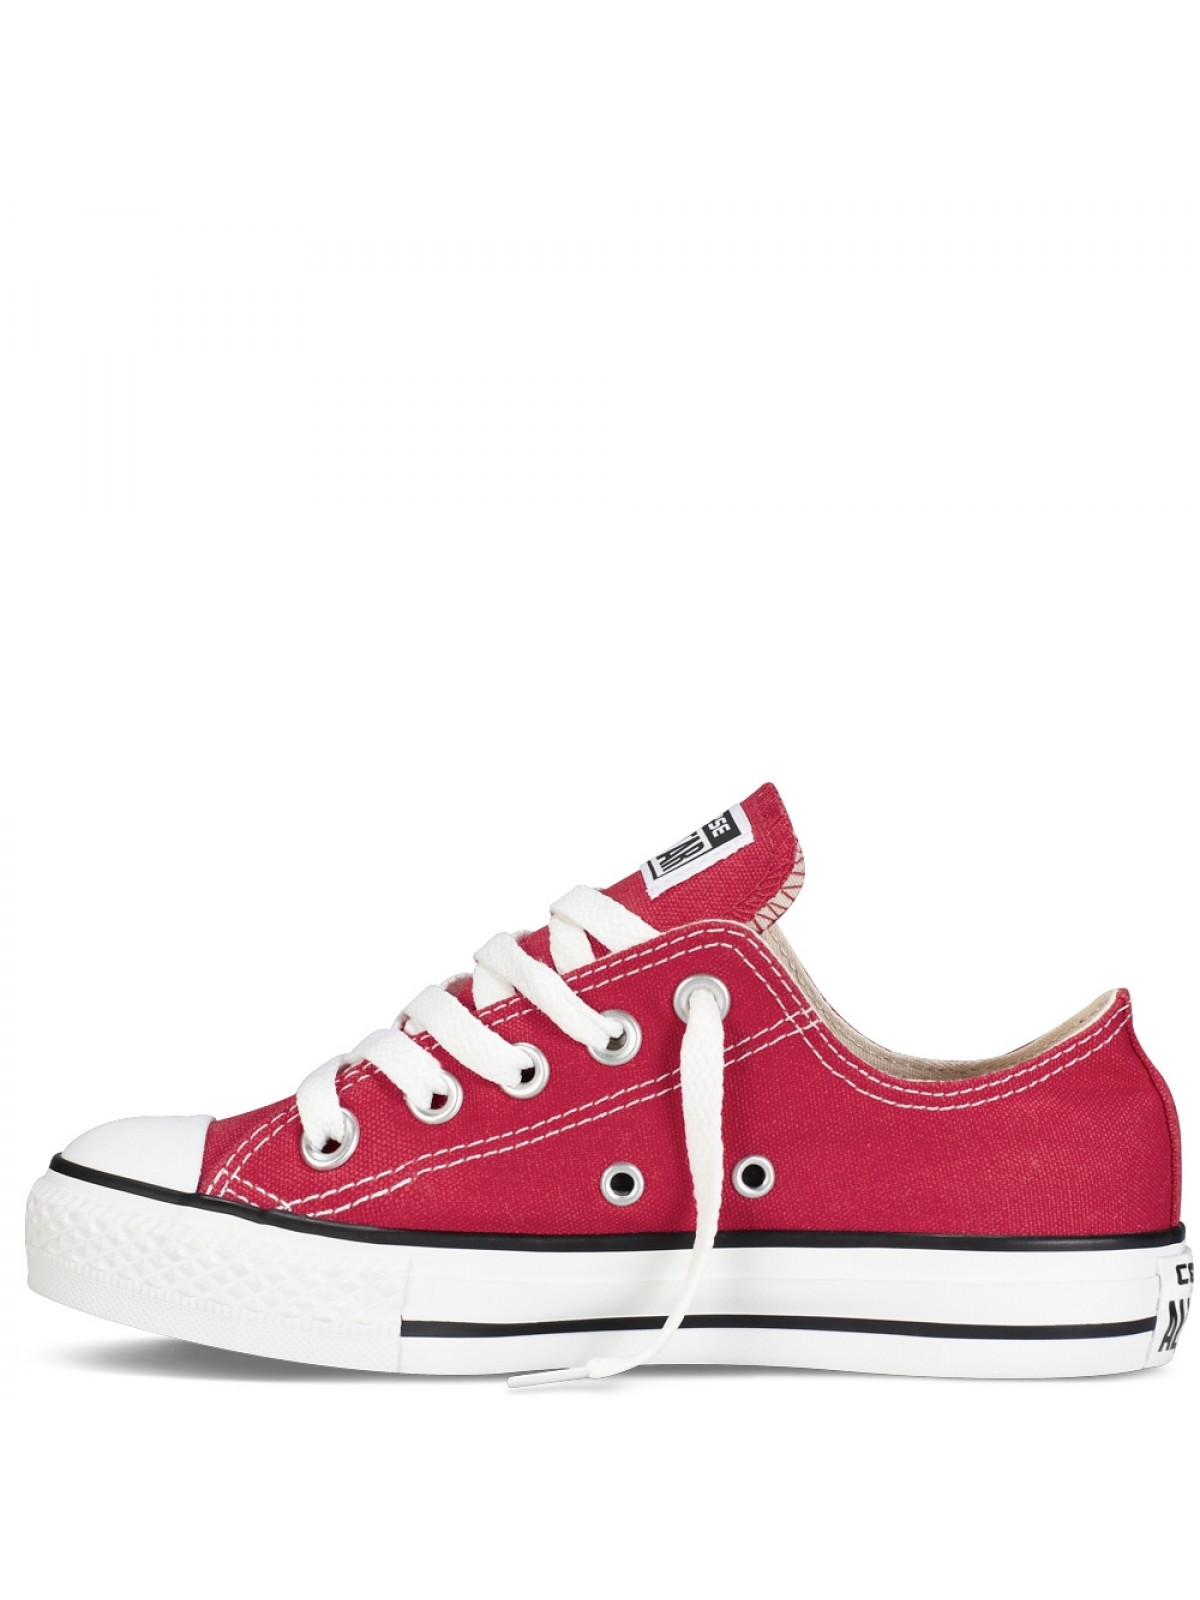 7761ade0b3e97 Converse Cadet Chuck Taylor all star toile basse rouge - Converse ...